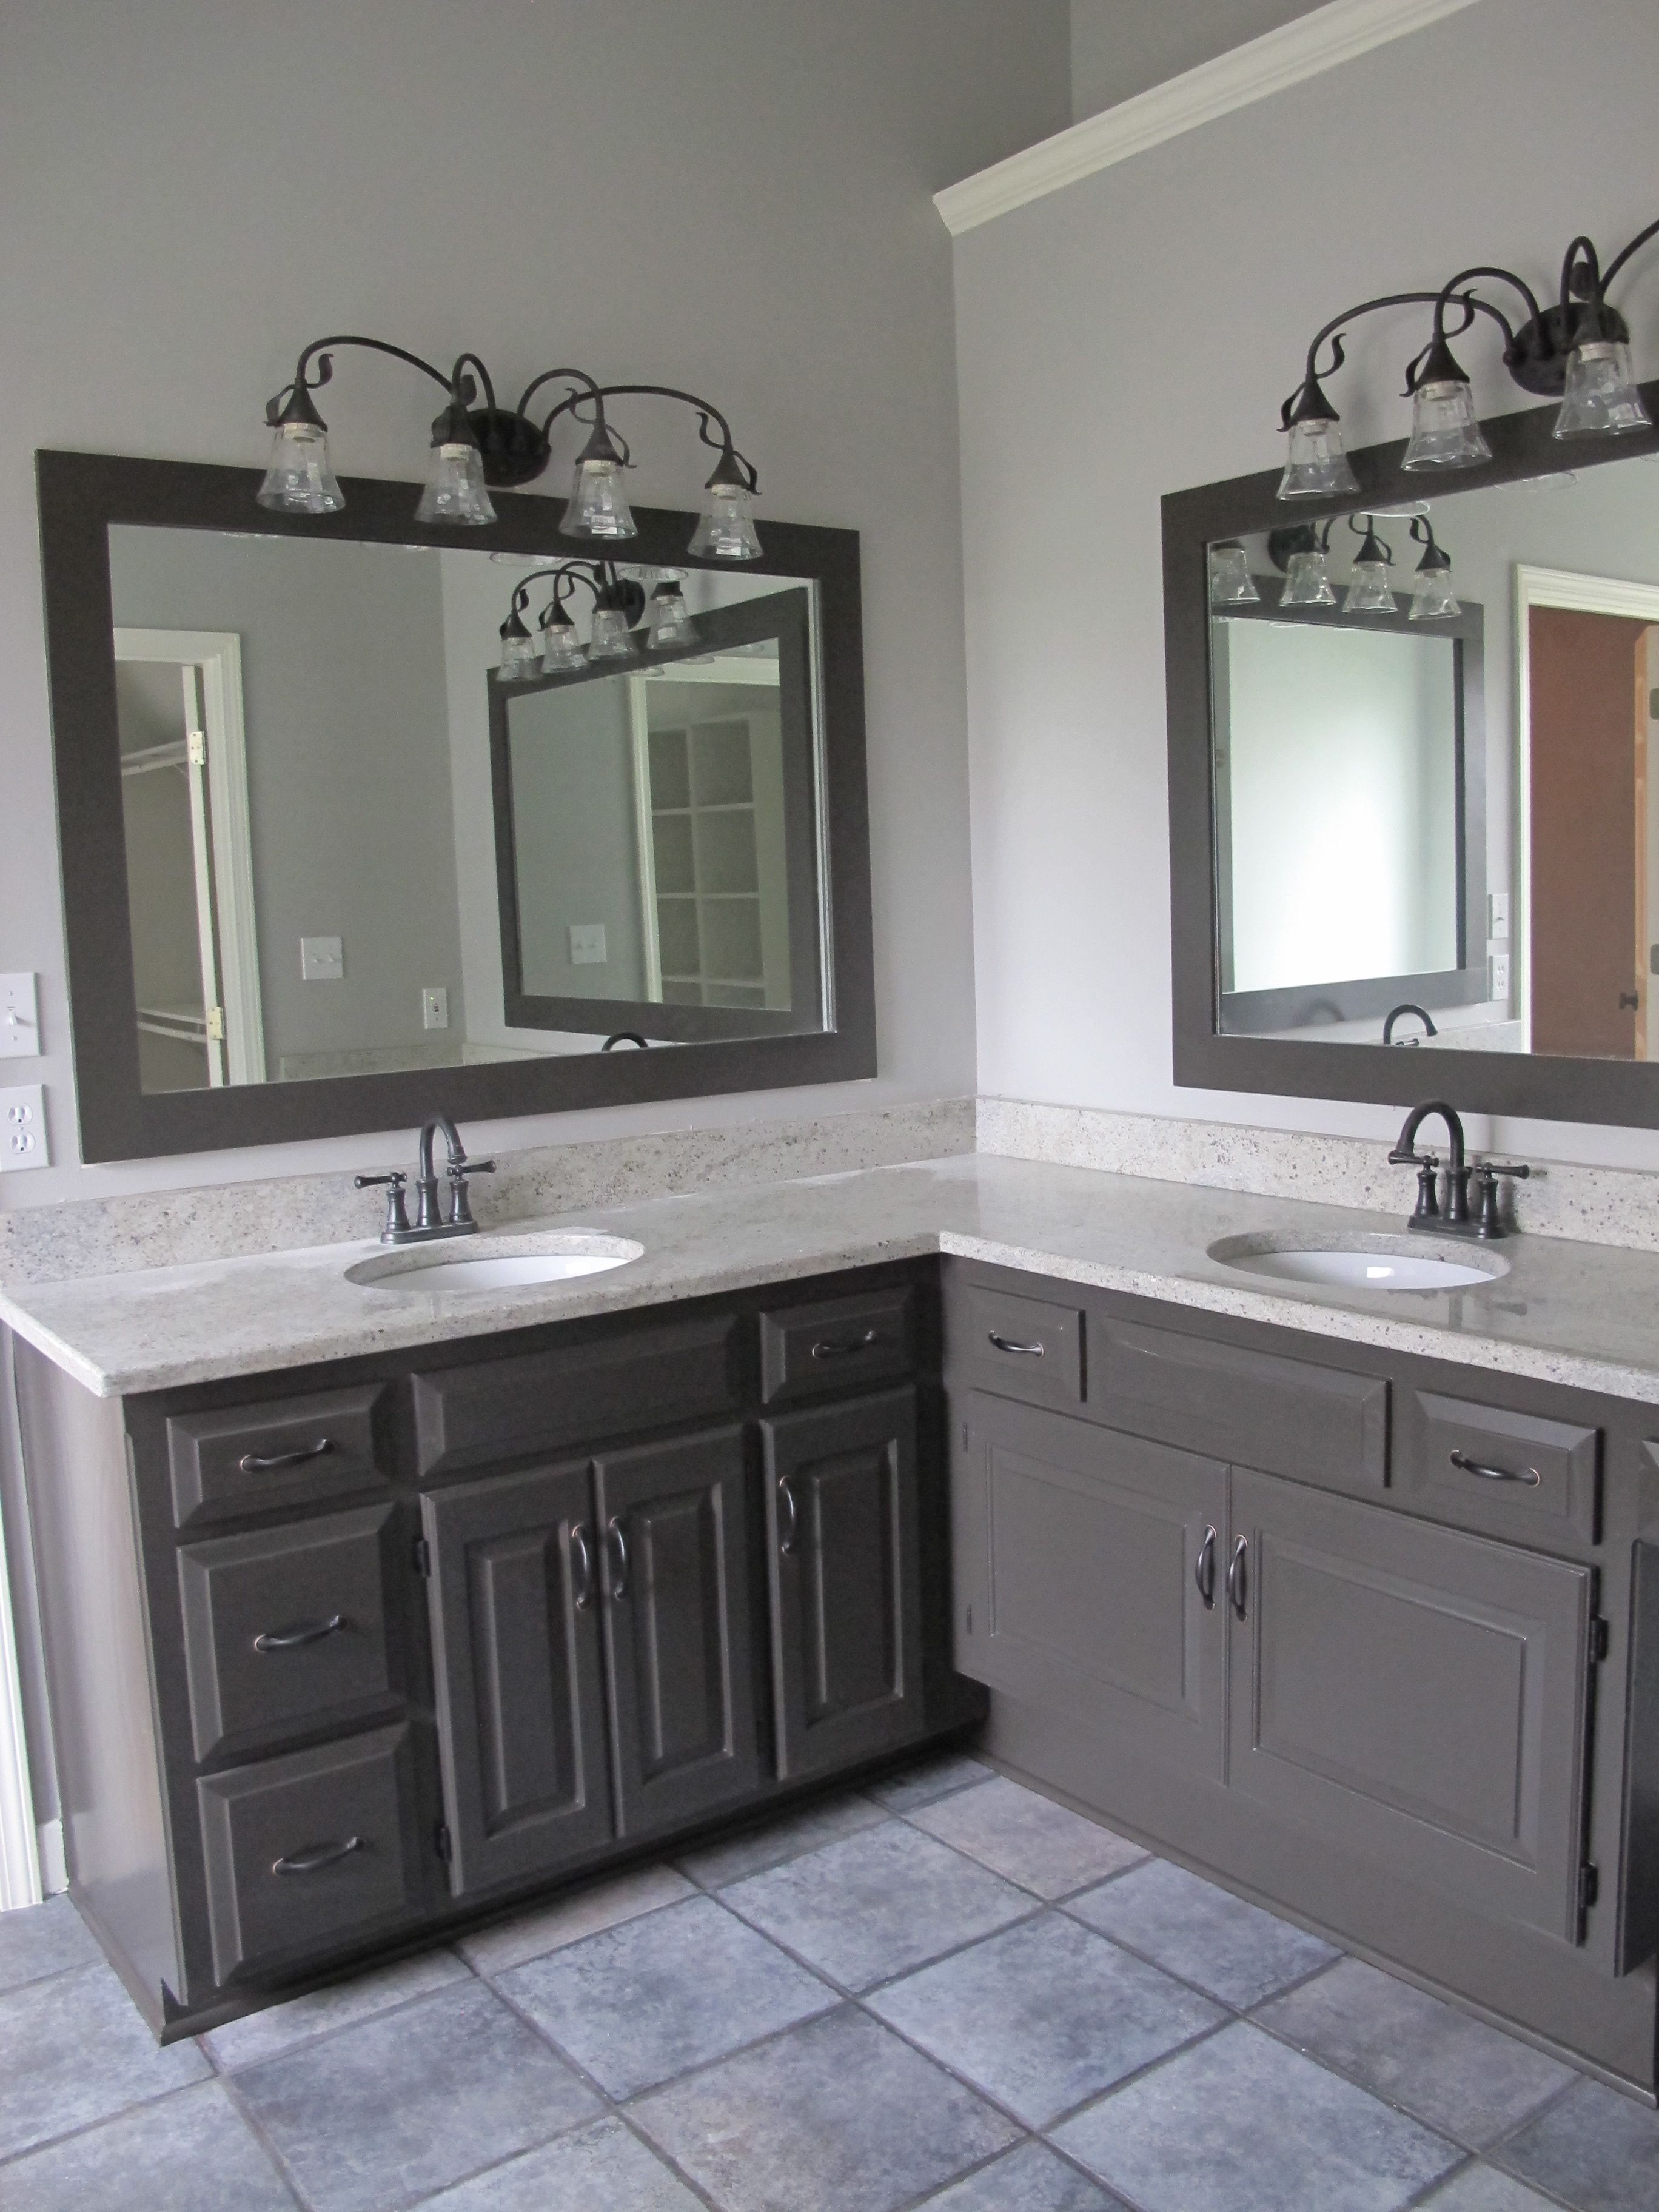 1000 images about sherwin williams colors on pinterest for Painting bathroom cabinets gray